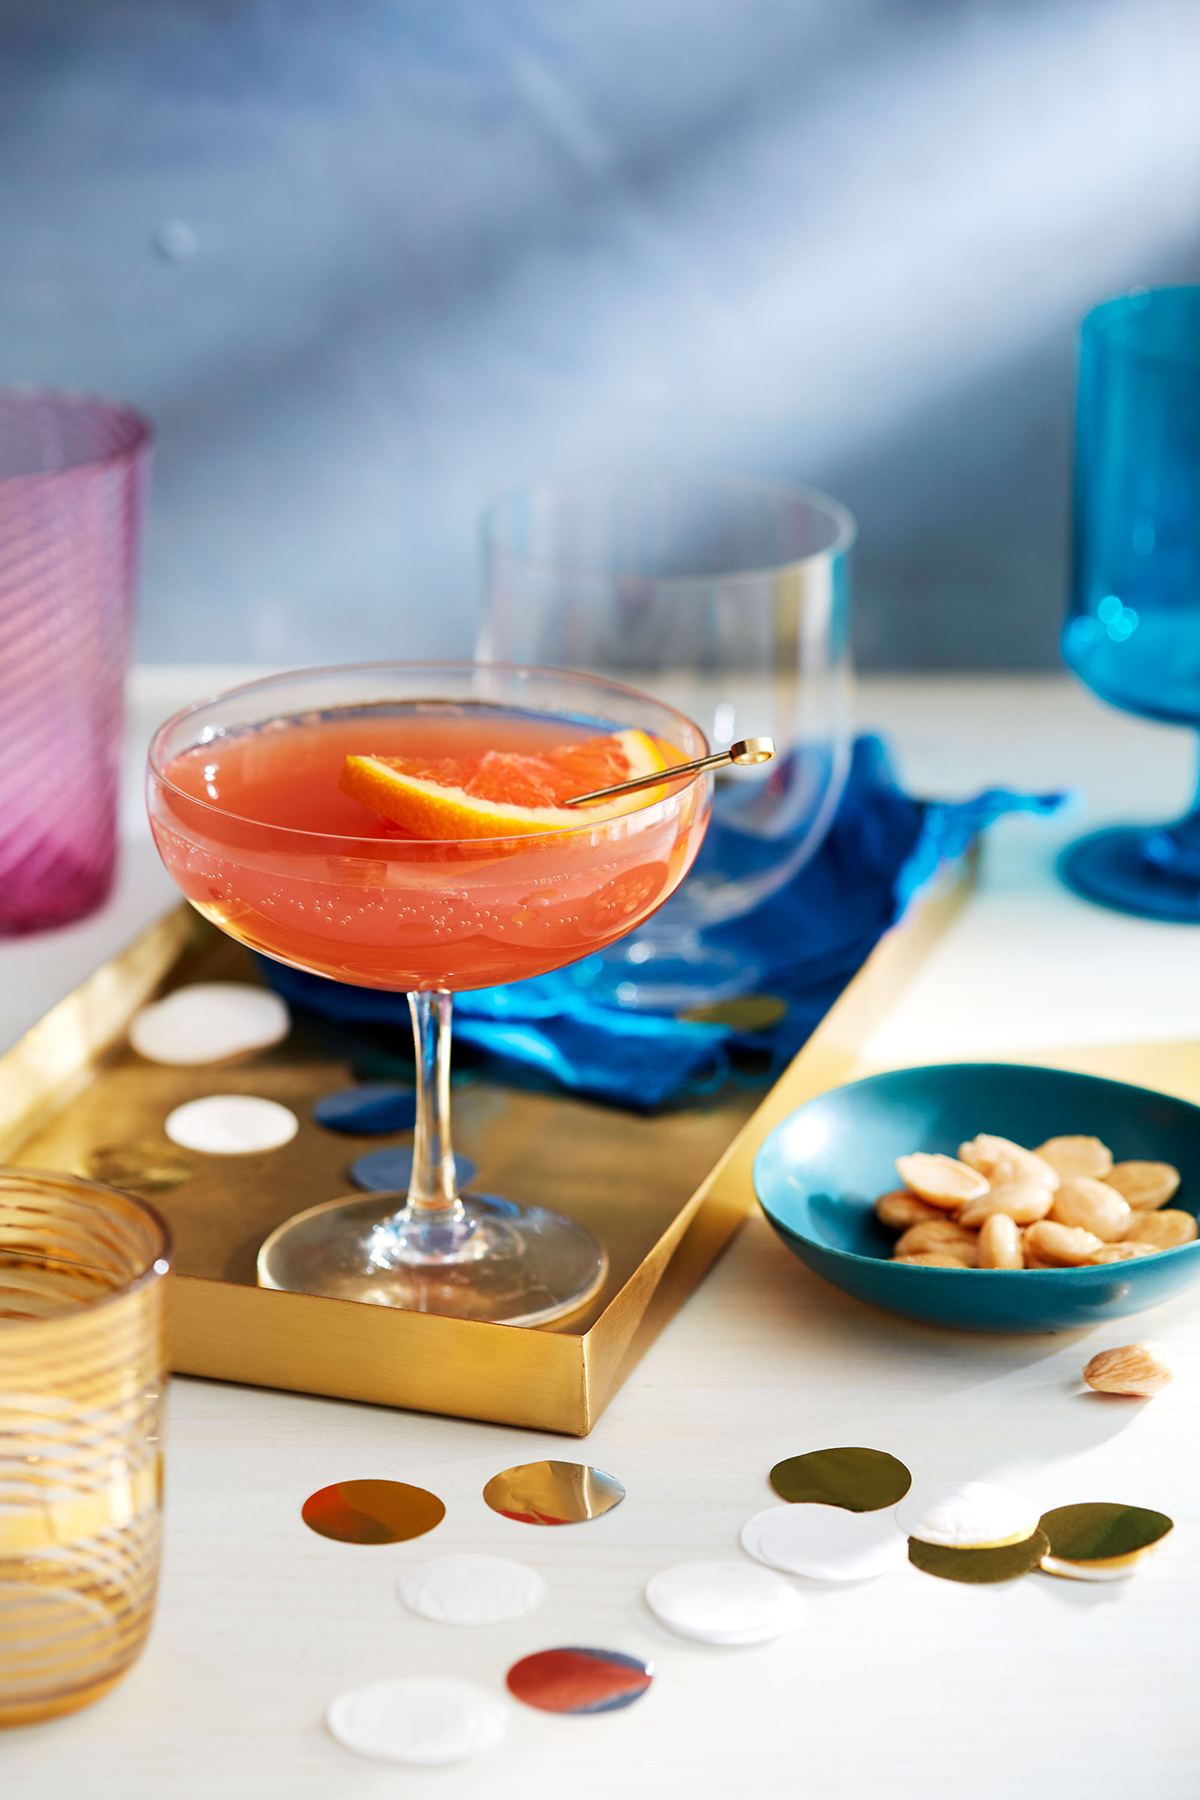 pomegranate mojito cocktail and party peanuts on table